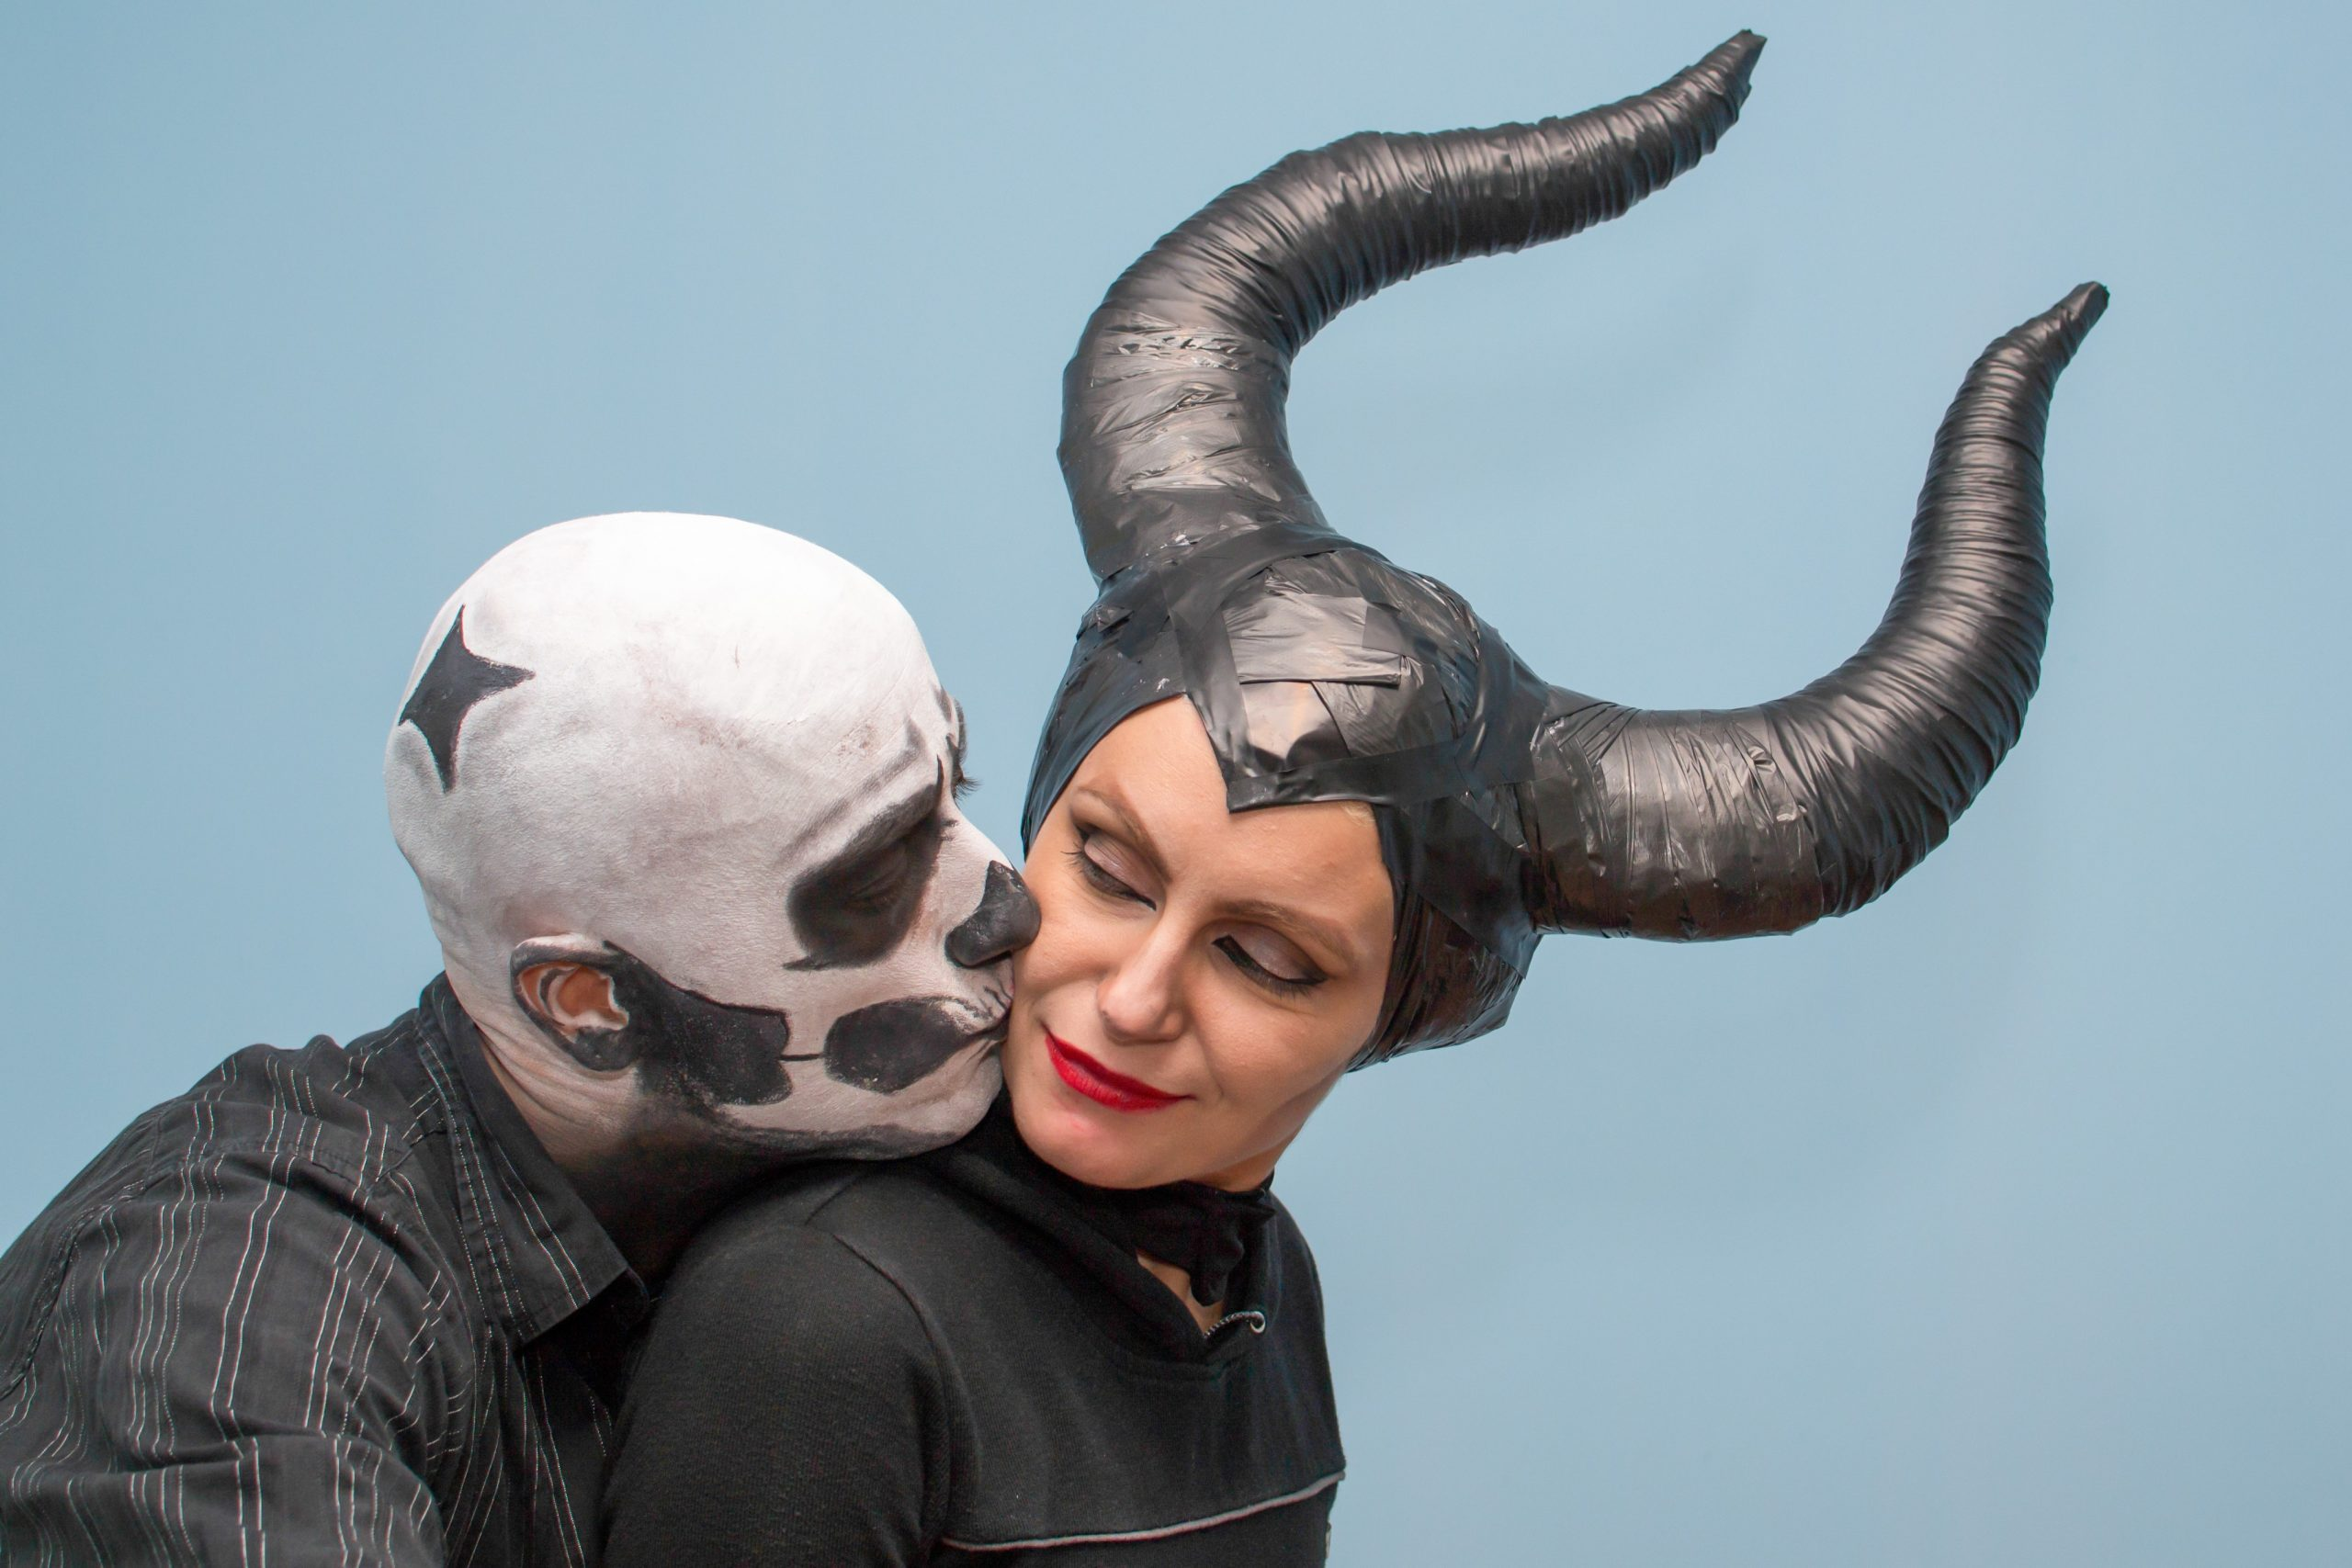 Couple in Halloween costumes and makeup